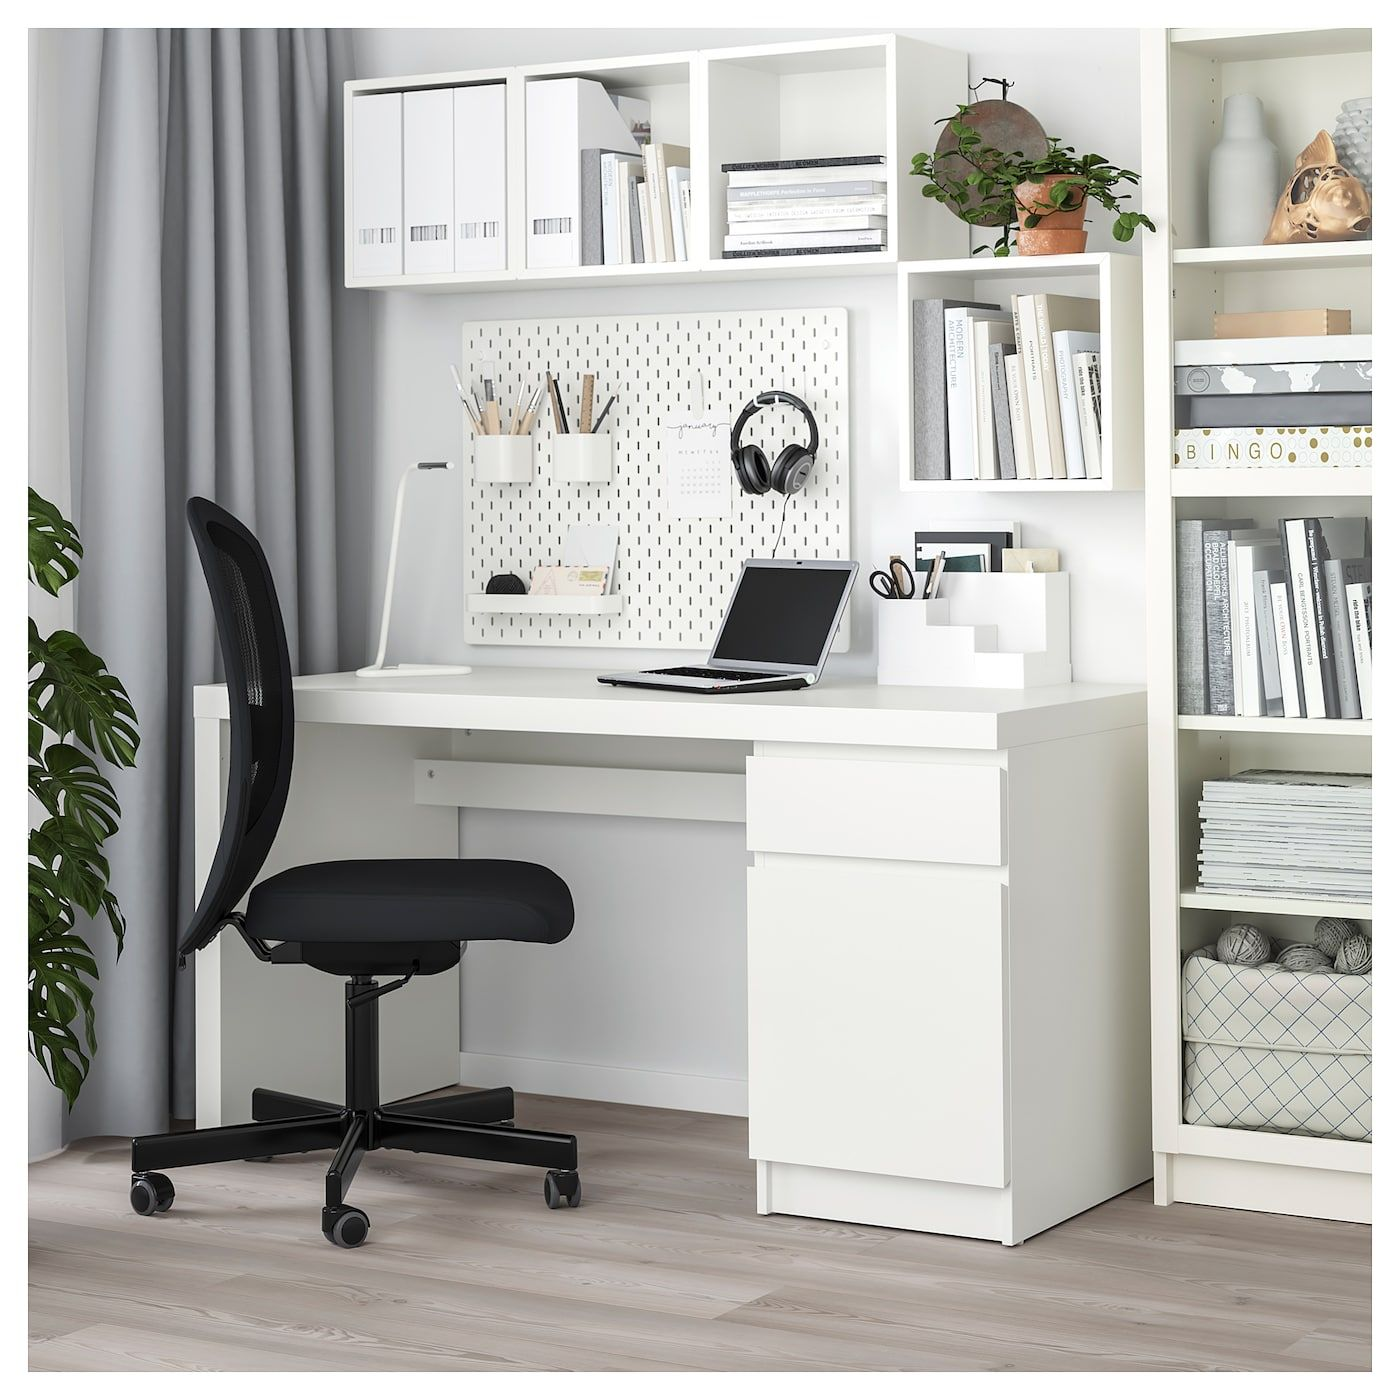 Malm Desk White 55 1 8x25 5 8 140x65 Cm Home Office Design